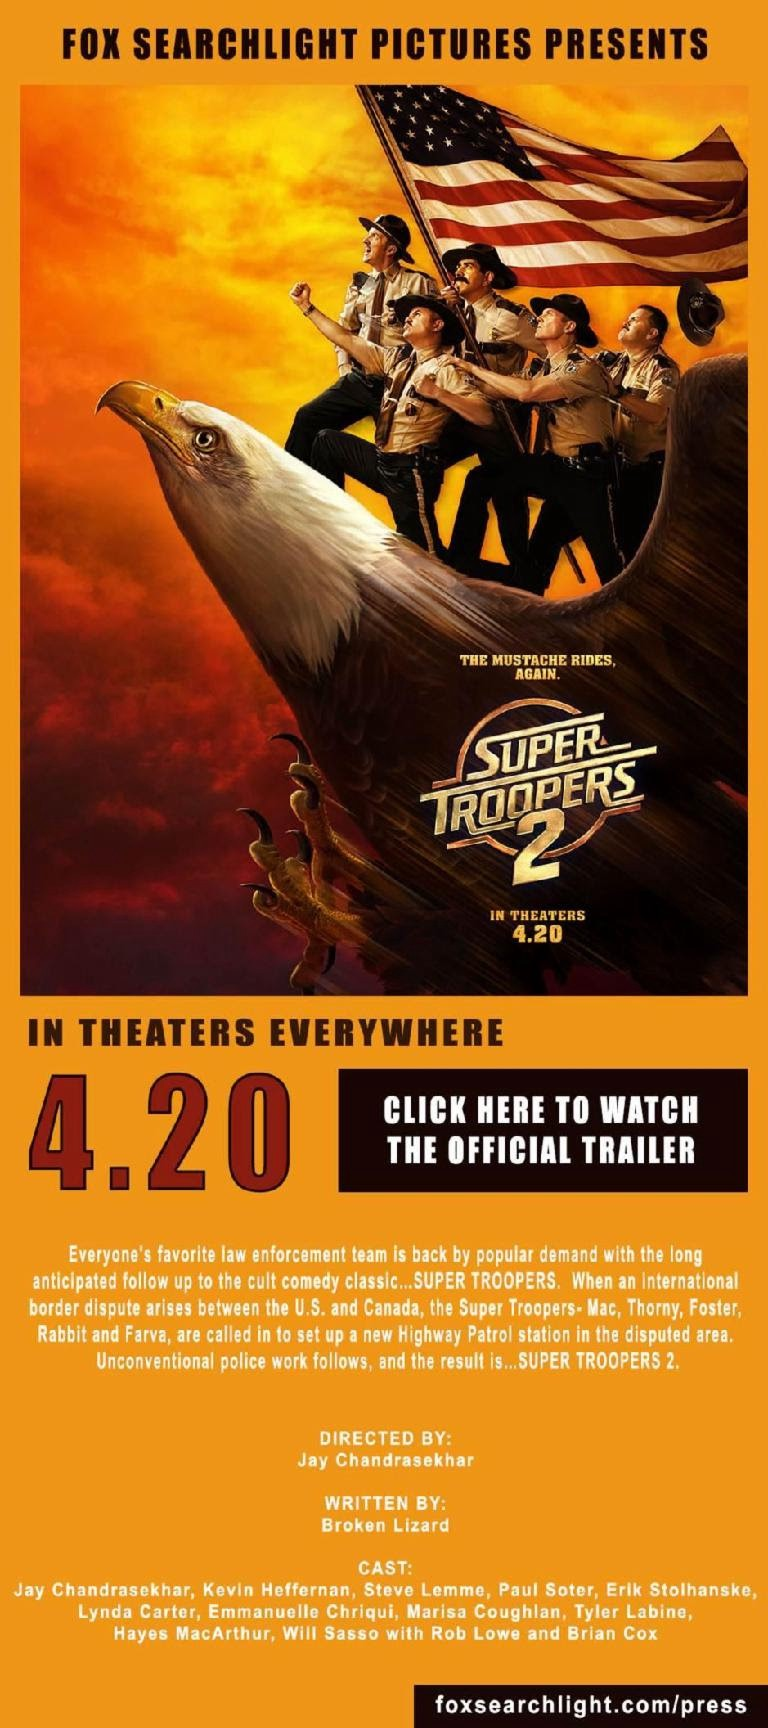 See the new poster for Super Troopers 2